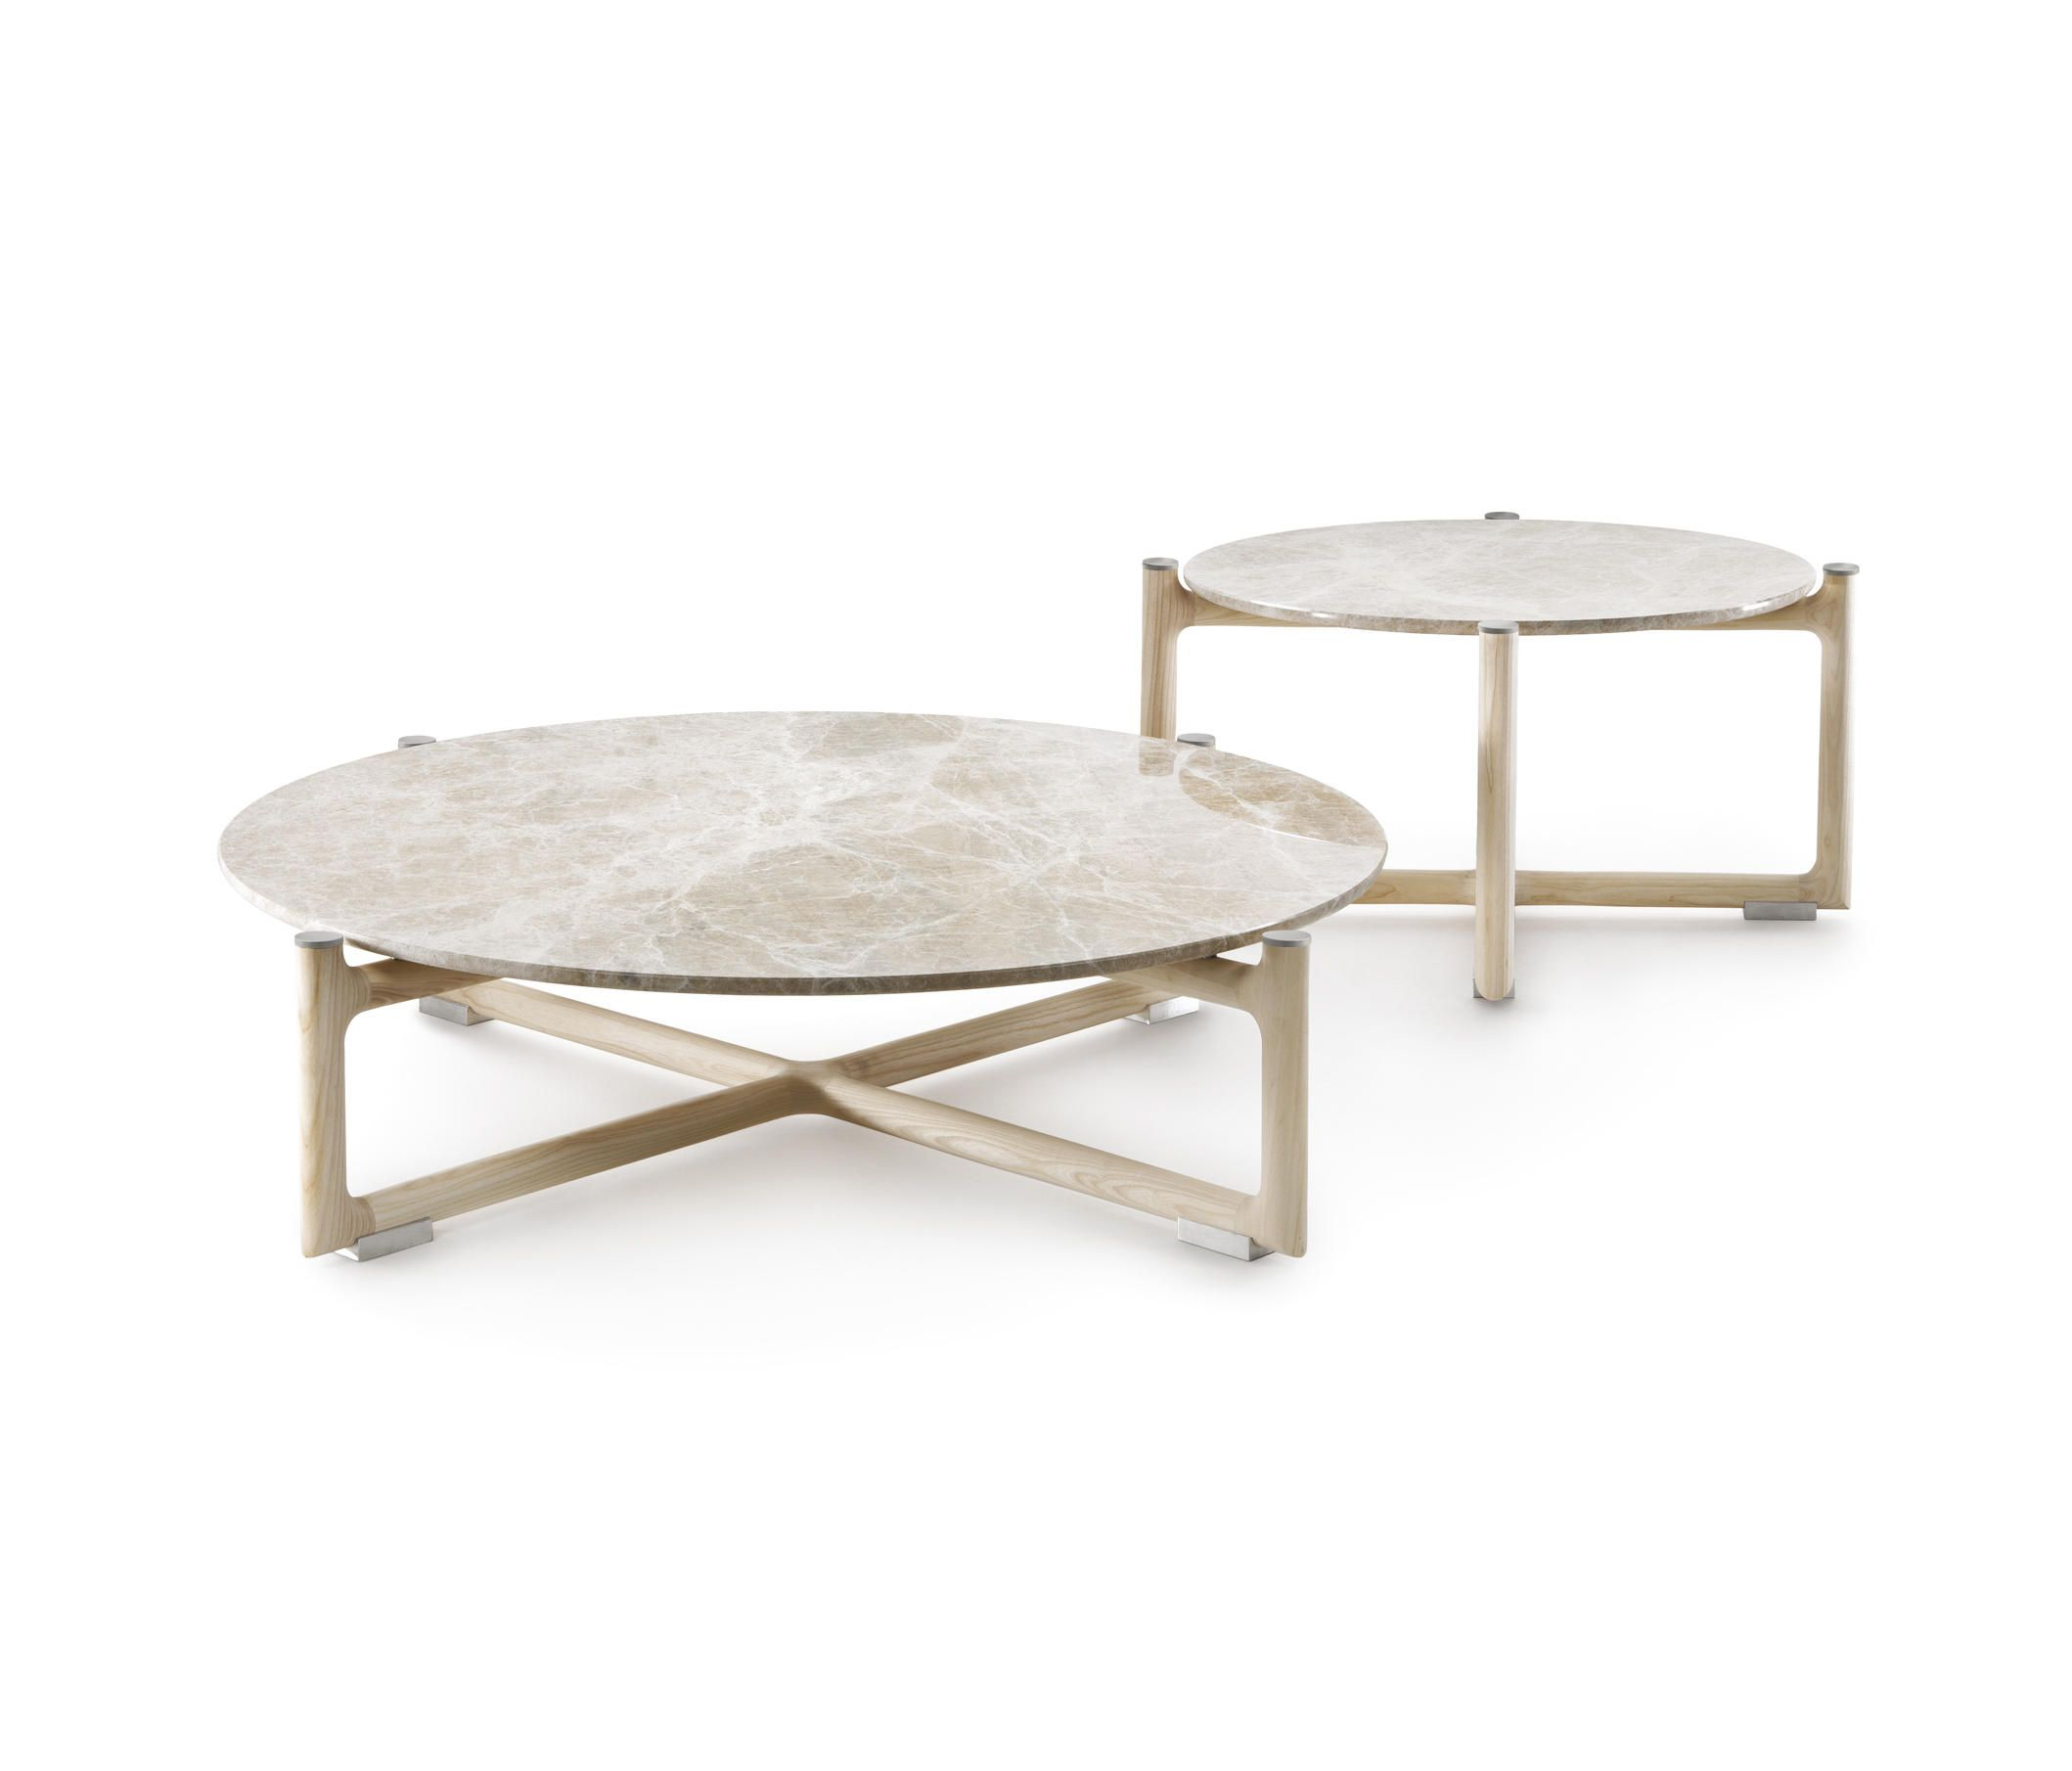 Headboard Frame In Wood And Fabric Or Leather Upholstery See Wooden Finishings On The Pr Coffee Table Round Coffee Table Living Room Marble Round Coffee Table [ 1810 x 2118 Pixel ]